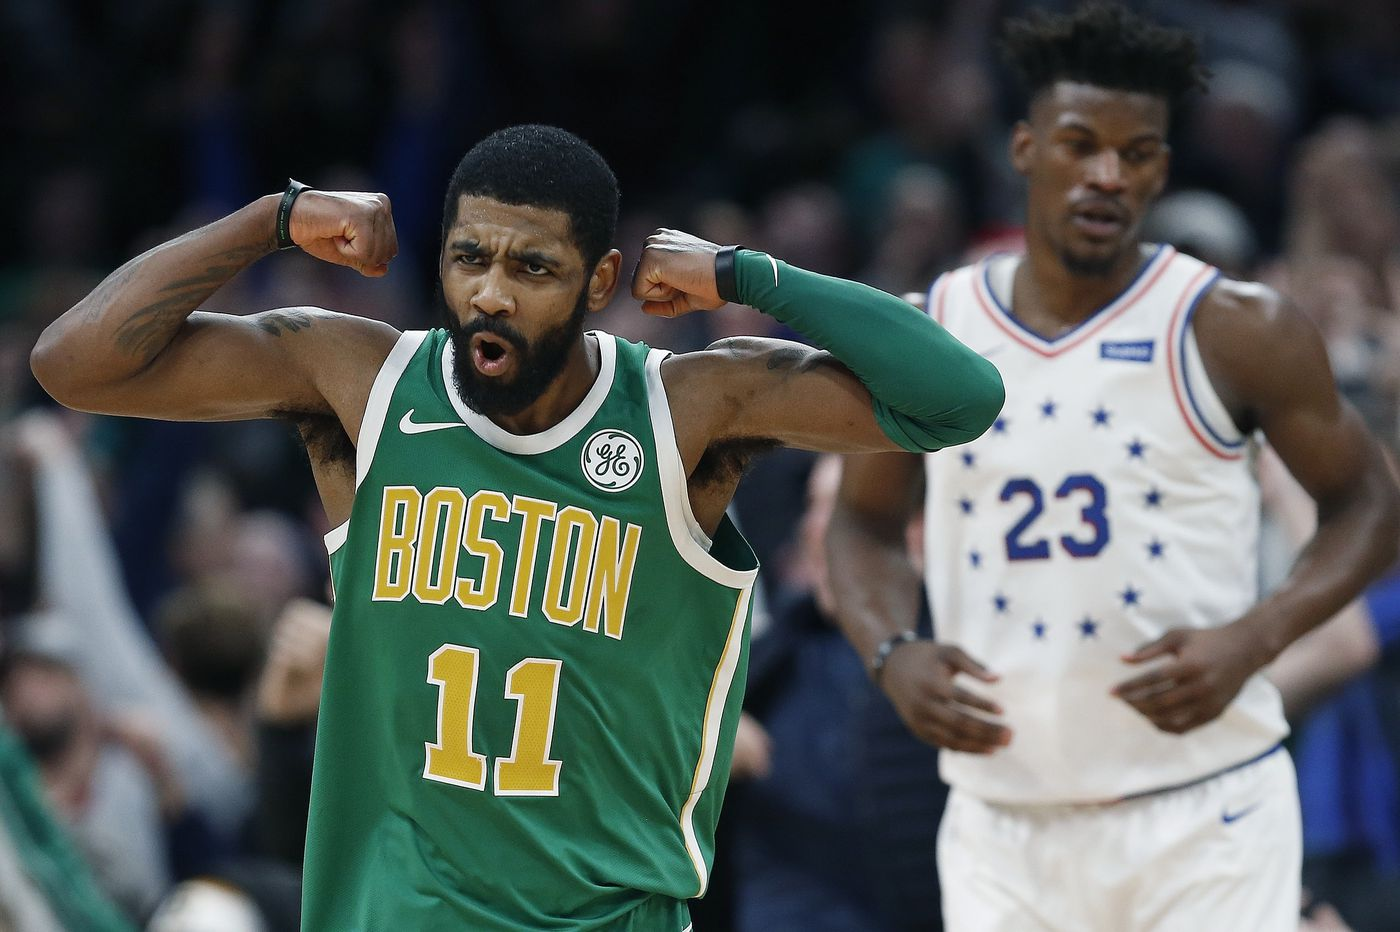 Sixers blow lead, lose to Celtics 121-114 in OT as Kyrie Irving's 40 points top Joel Embiid's 34